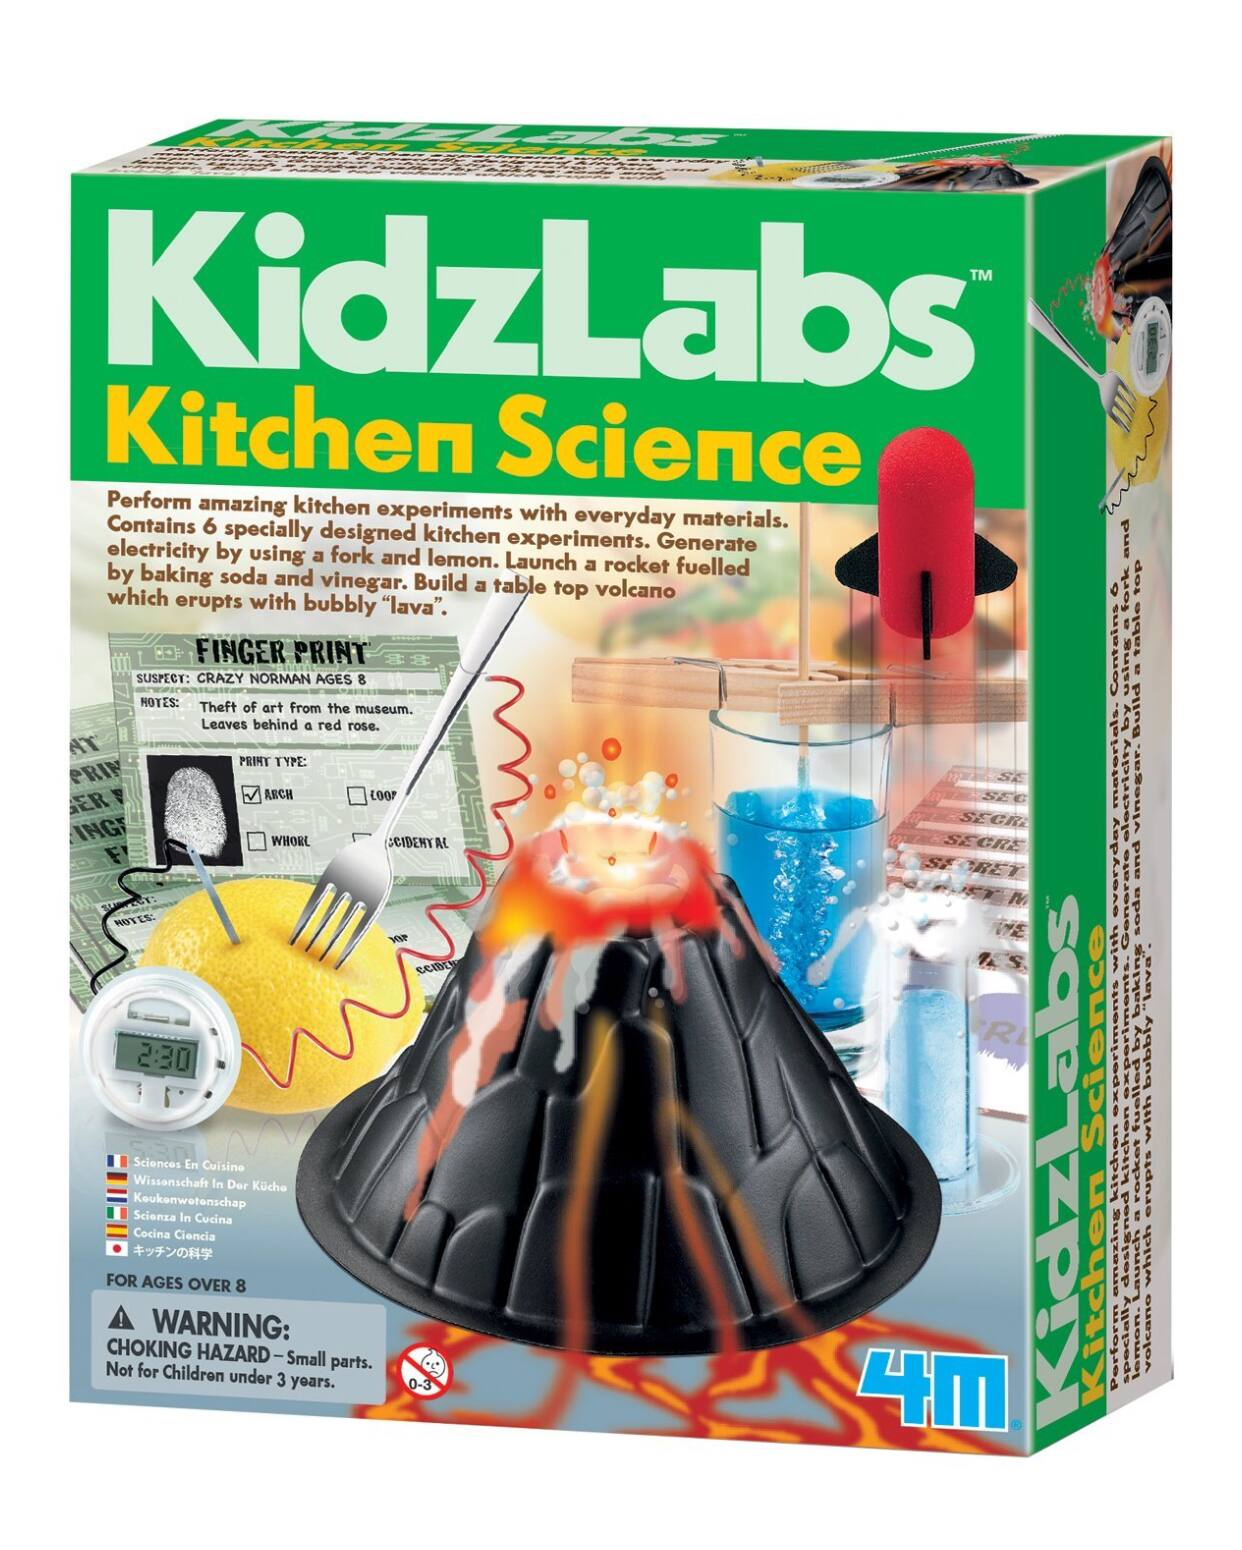 4M Kitchen Science Kit - $5 - FS with Amazon Prime.